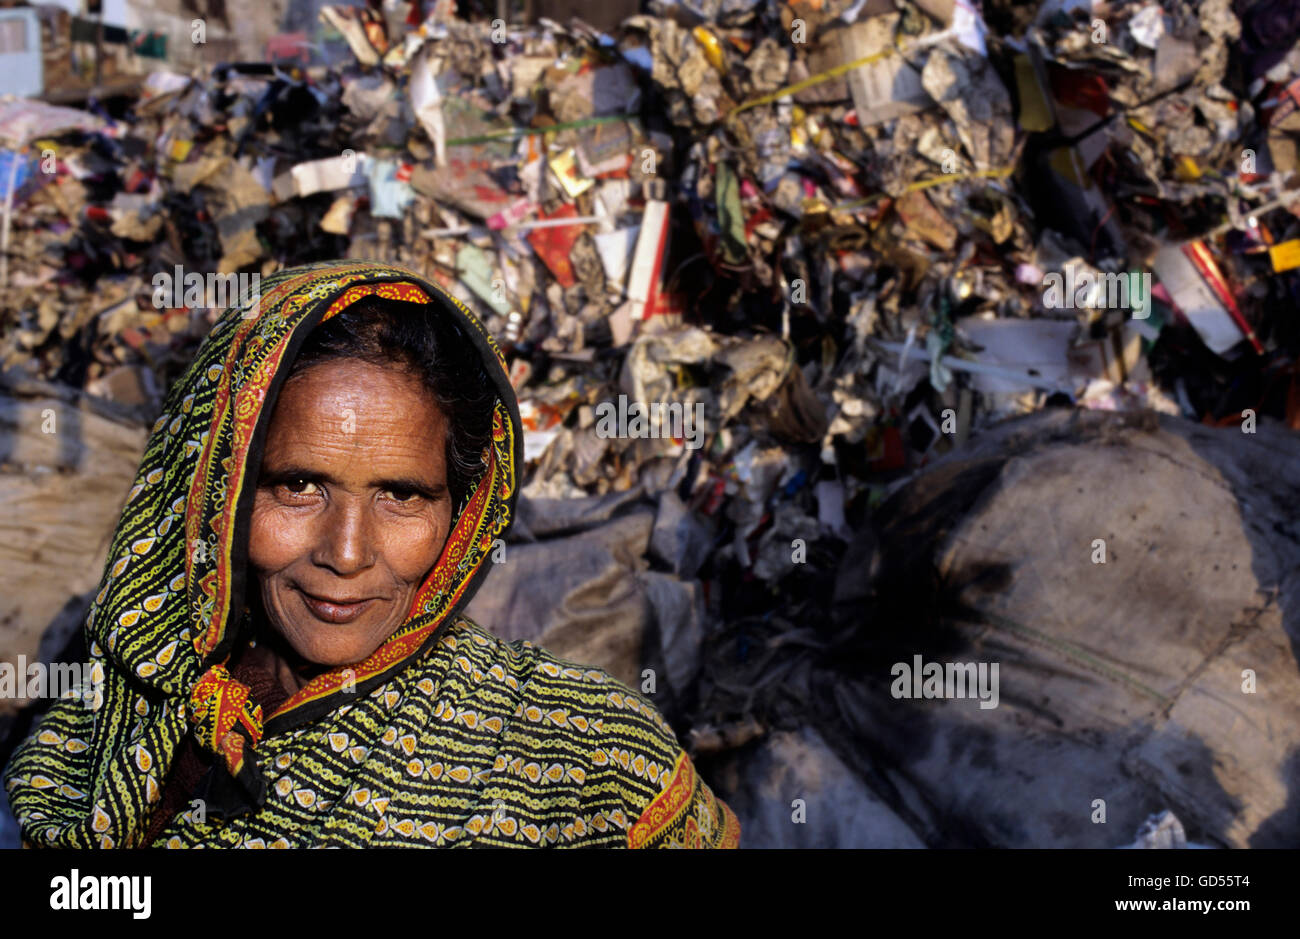 A female rubbish recycler - Stock Image